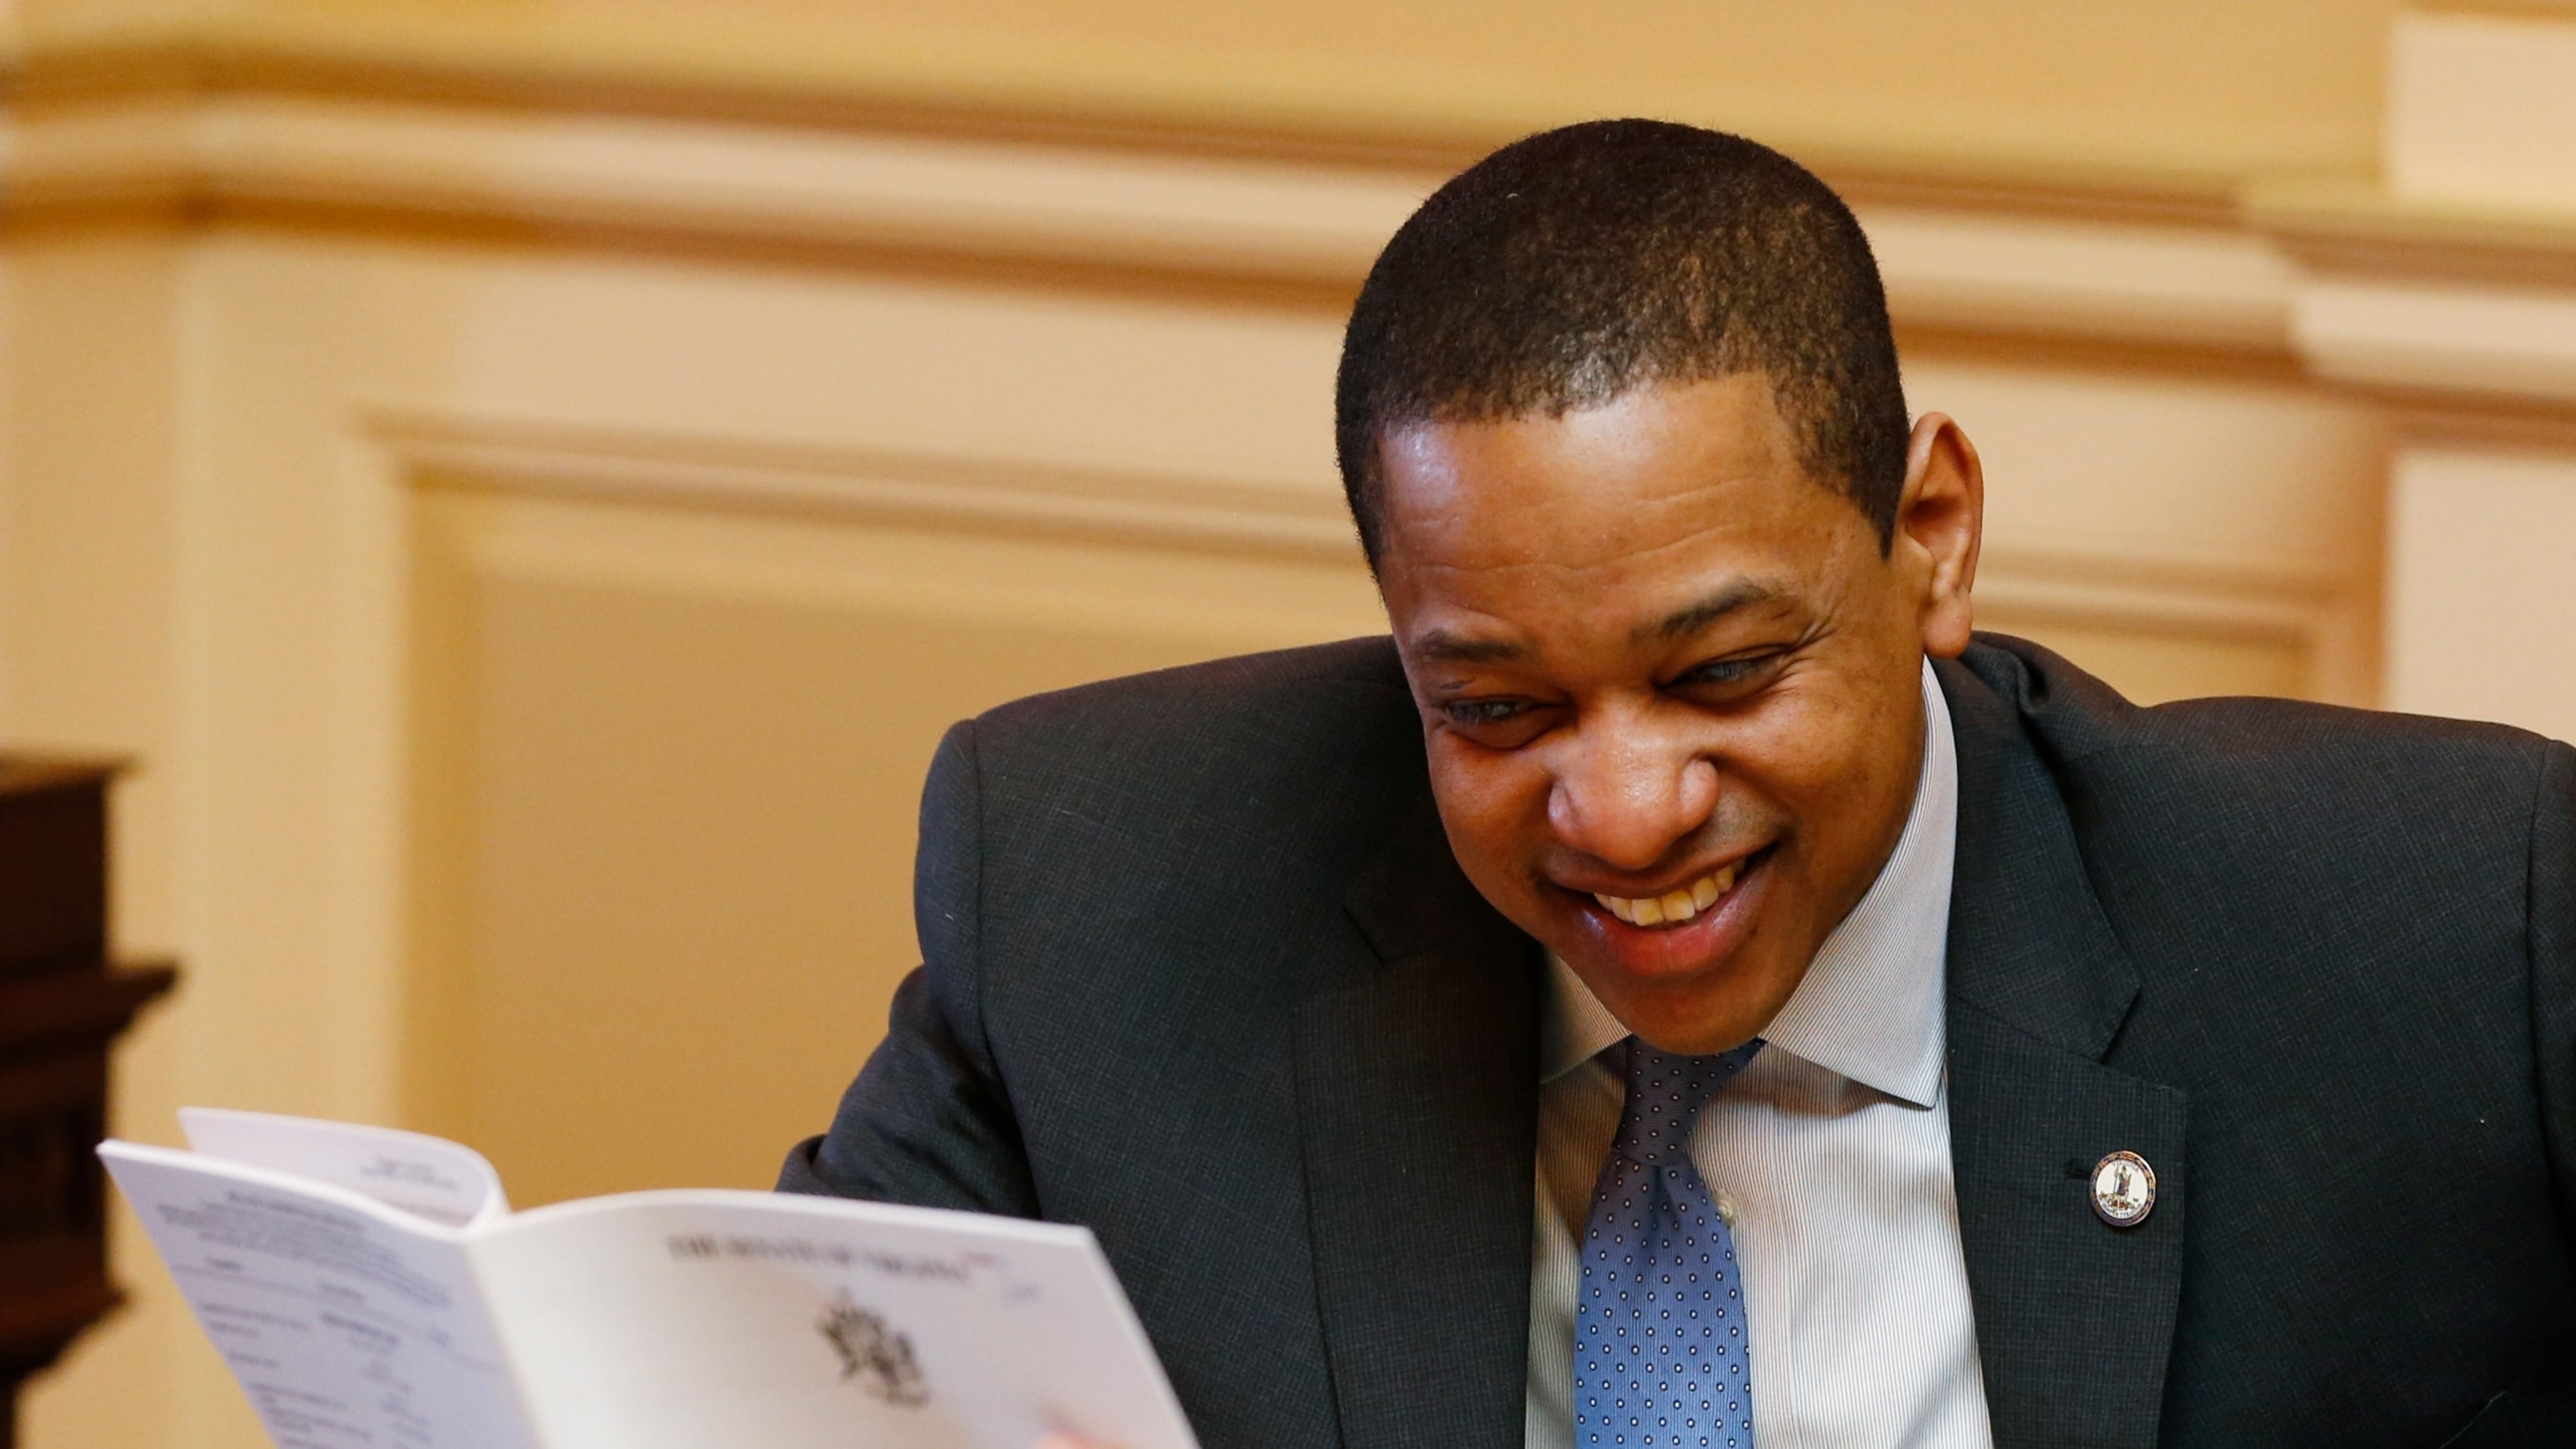 Virginia Lt. Gov. Justin Fairfax sexual assault accuser, Vanessa Tyson, speaks out: 'I suffered from both deep humiliation and shame'